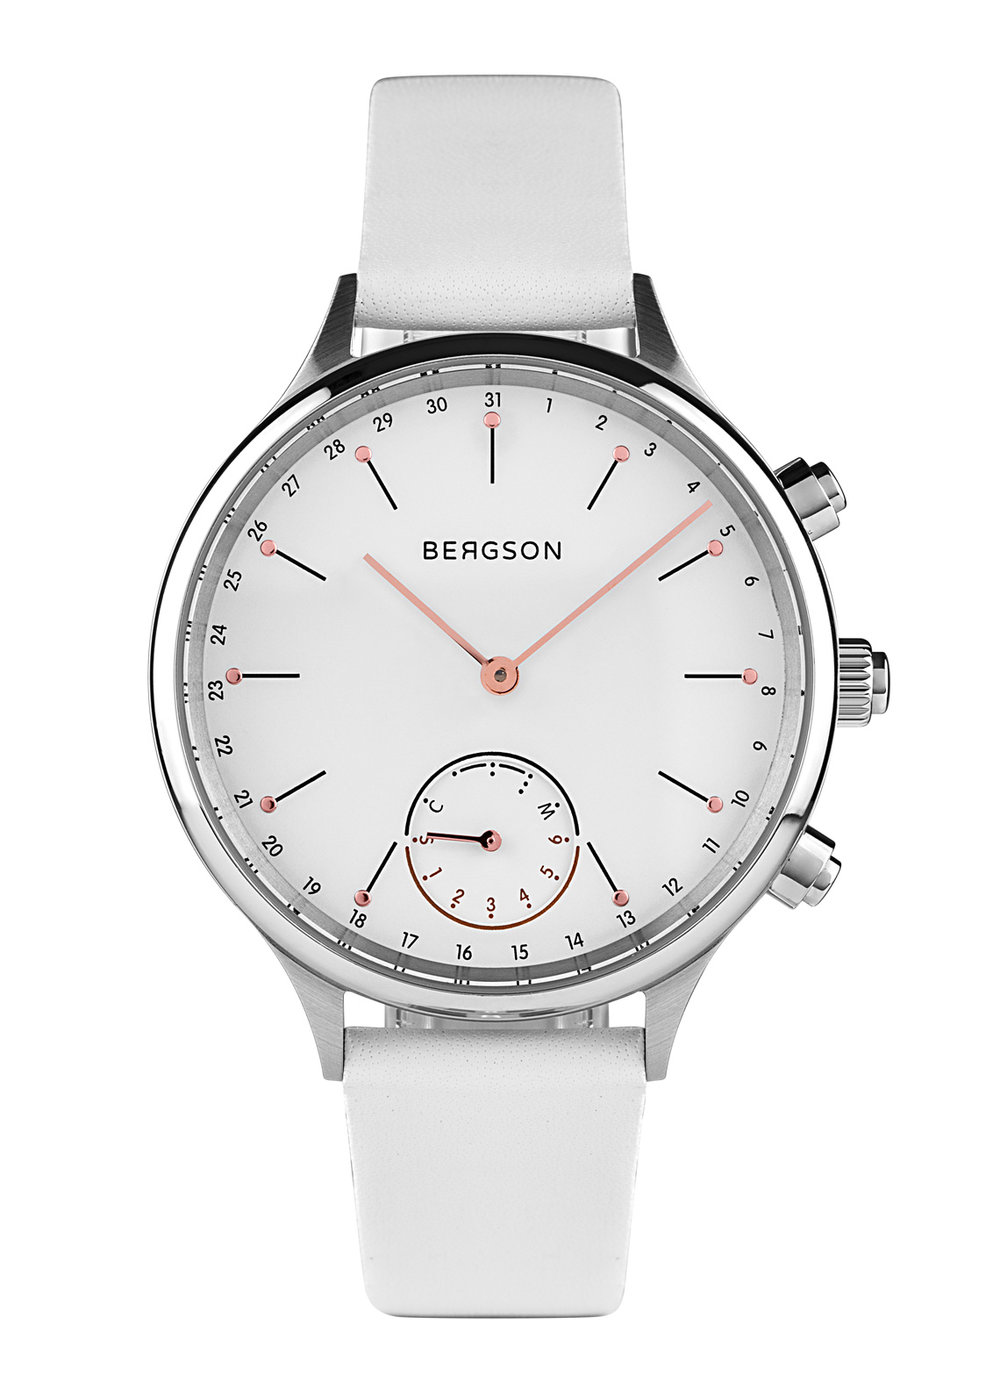 bergson_watches_BGW81525L10.jpg